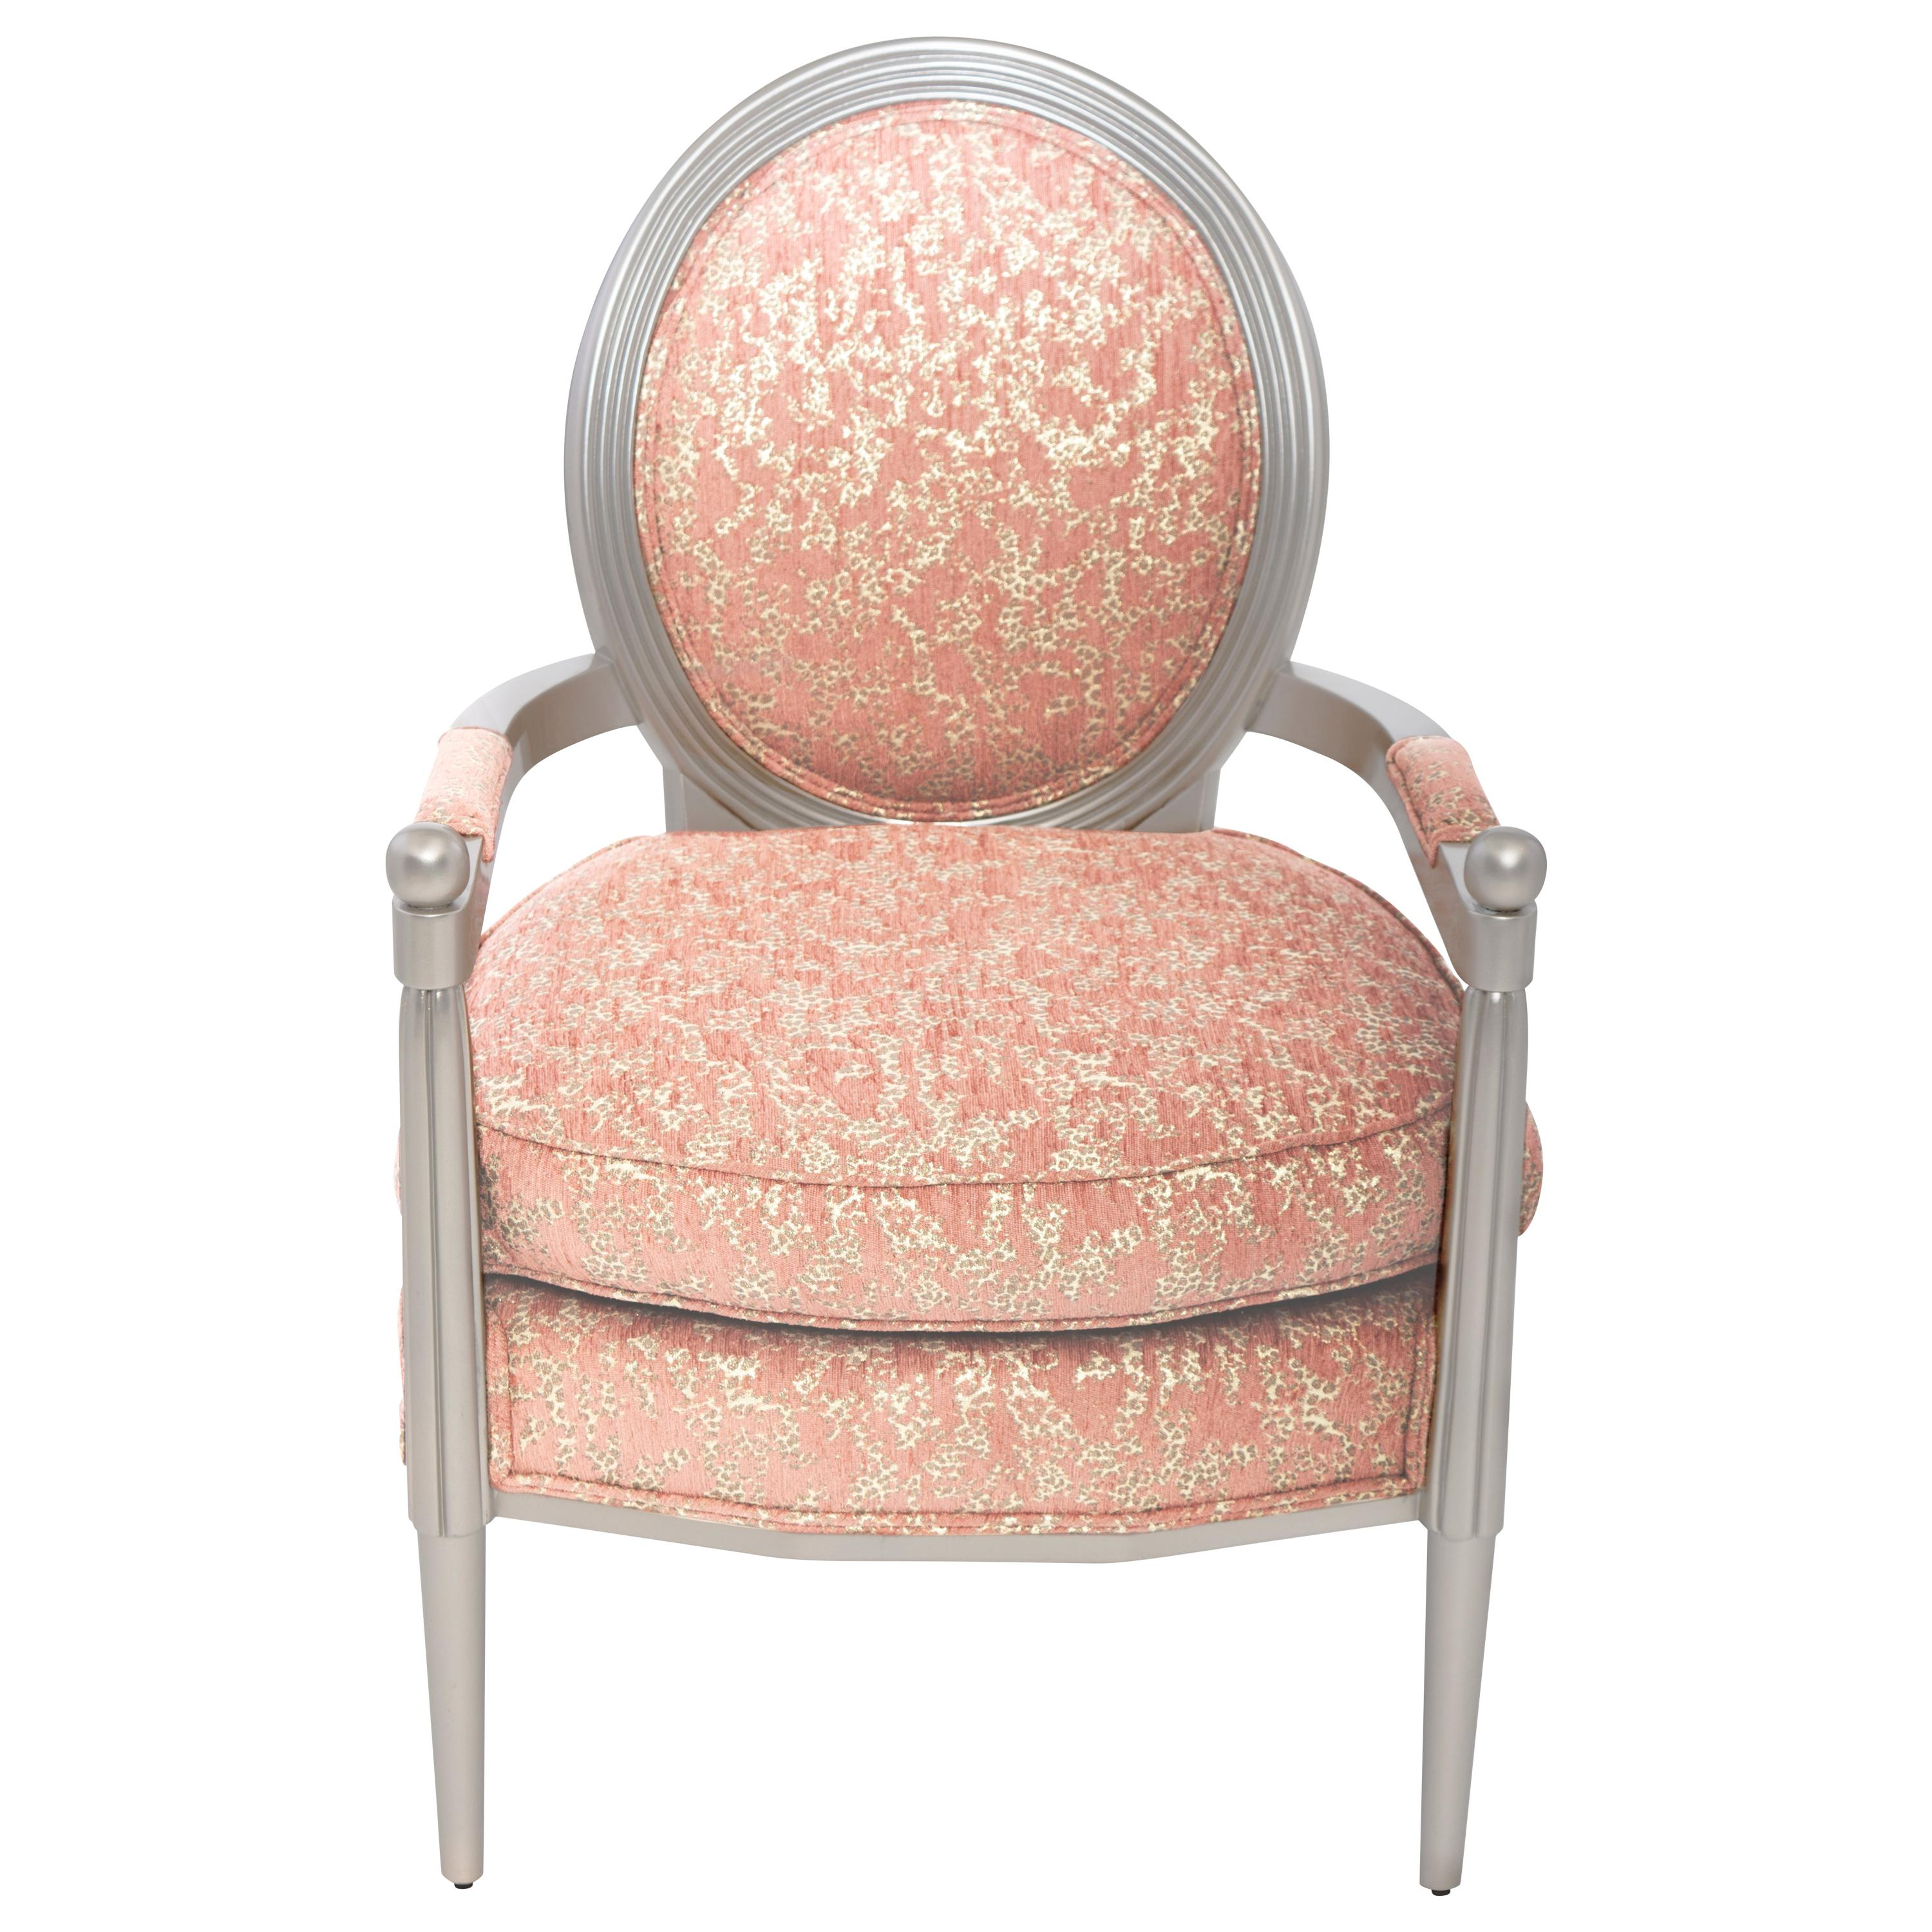 Marmont Accent Chair II in Rose & Silver Leaf by Innova Luxuxy Group